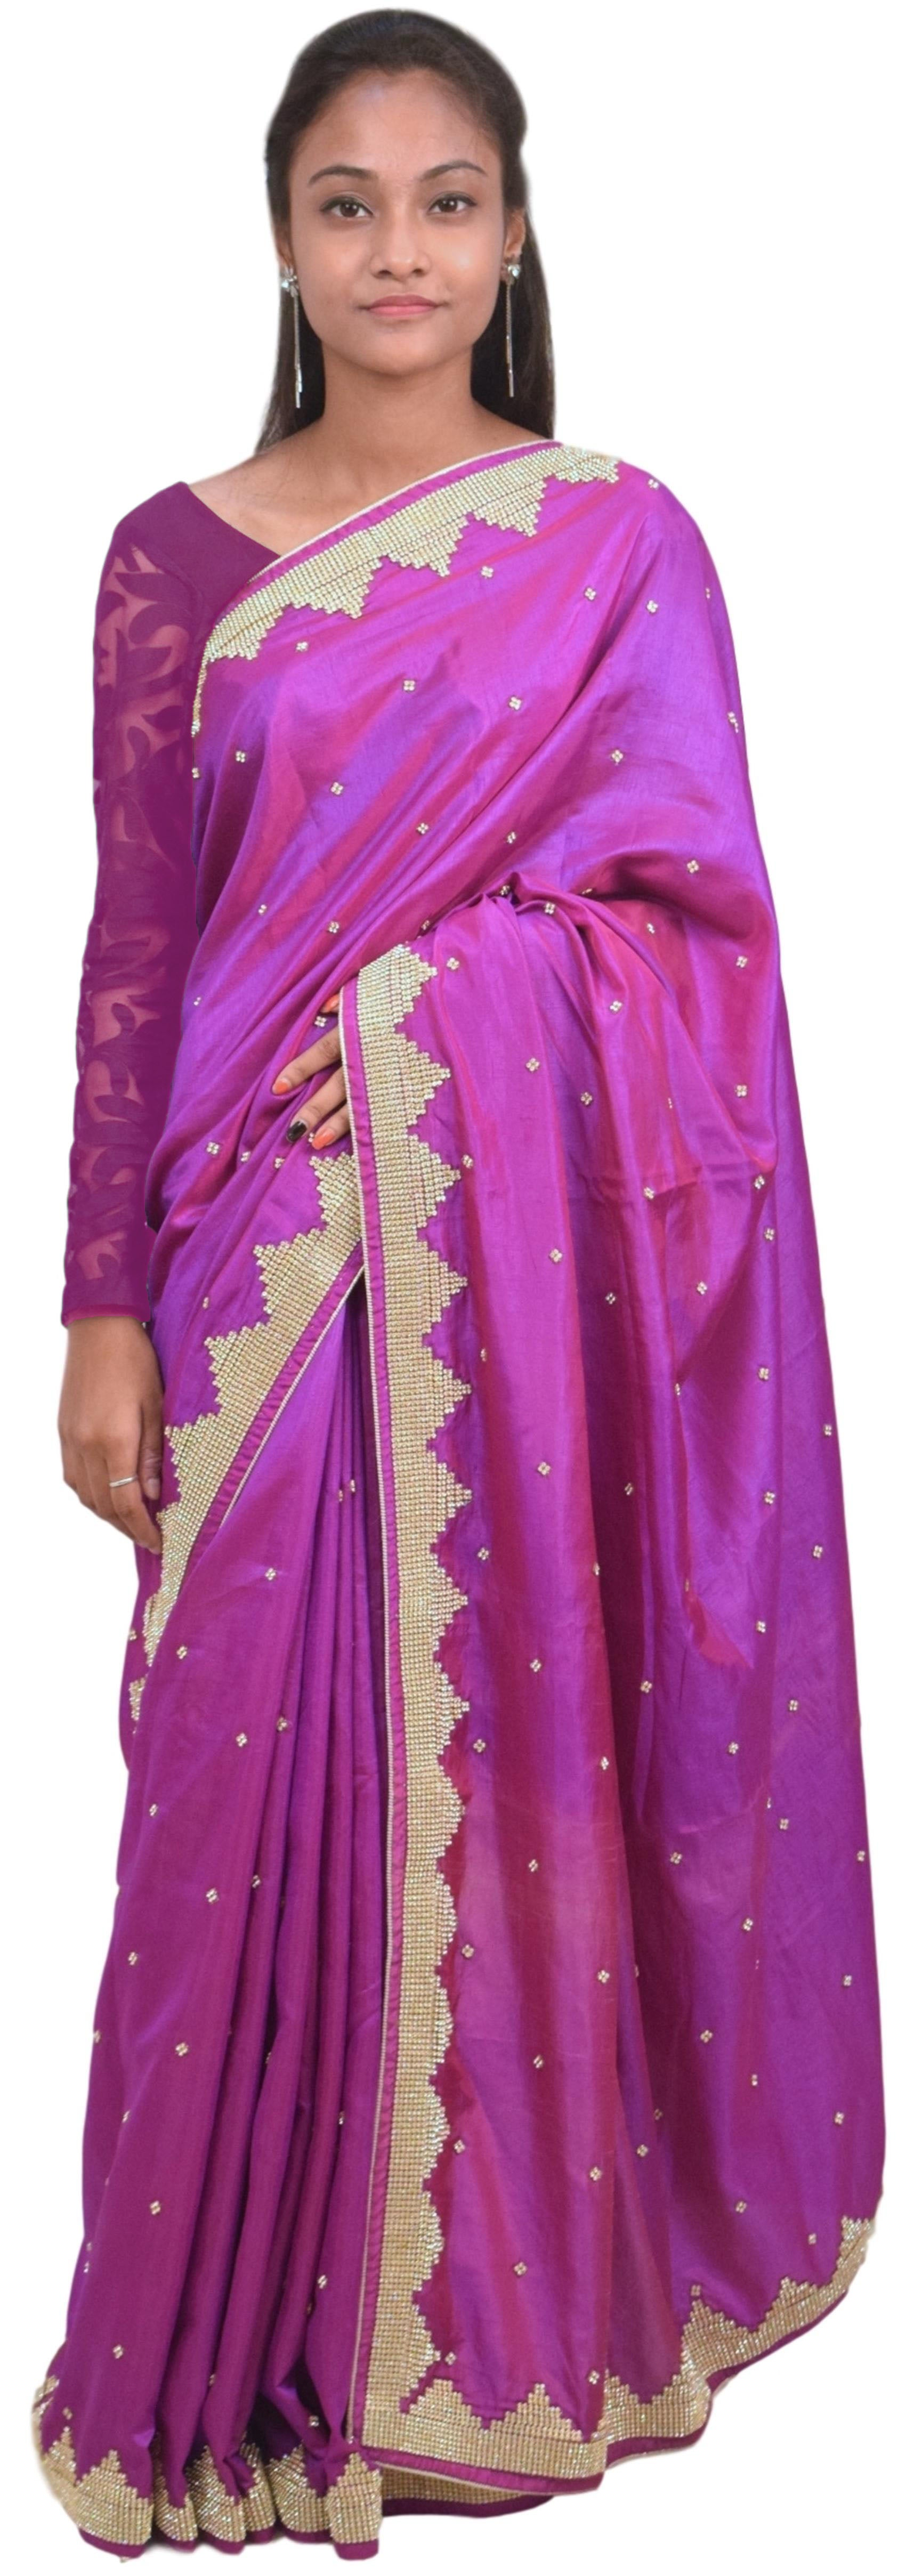 Violet Designer Silk Party Wear Hand Embroidery Zari Stone Thread Work Saree Sari